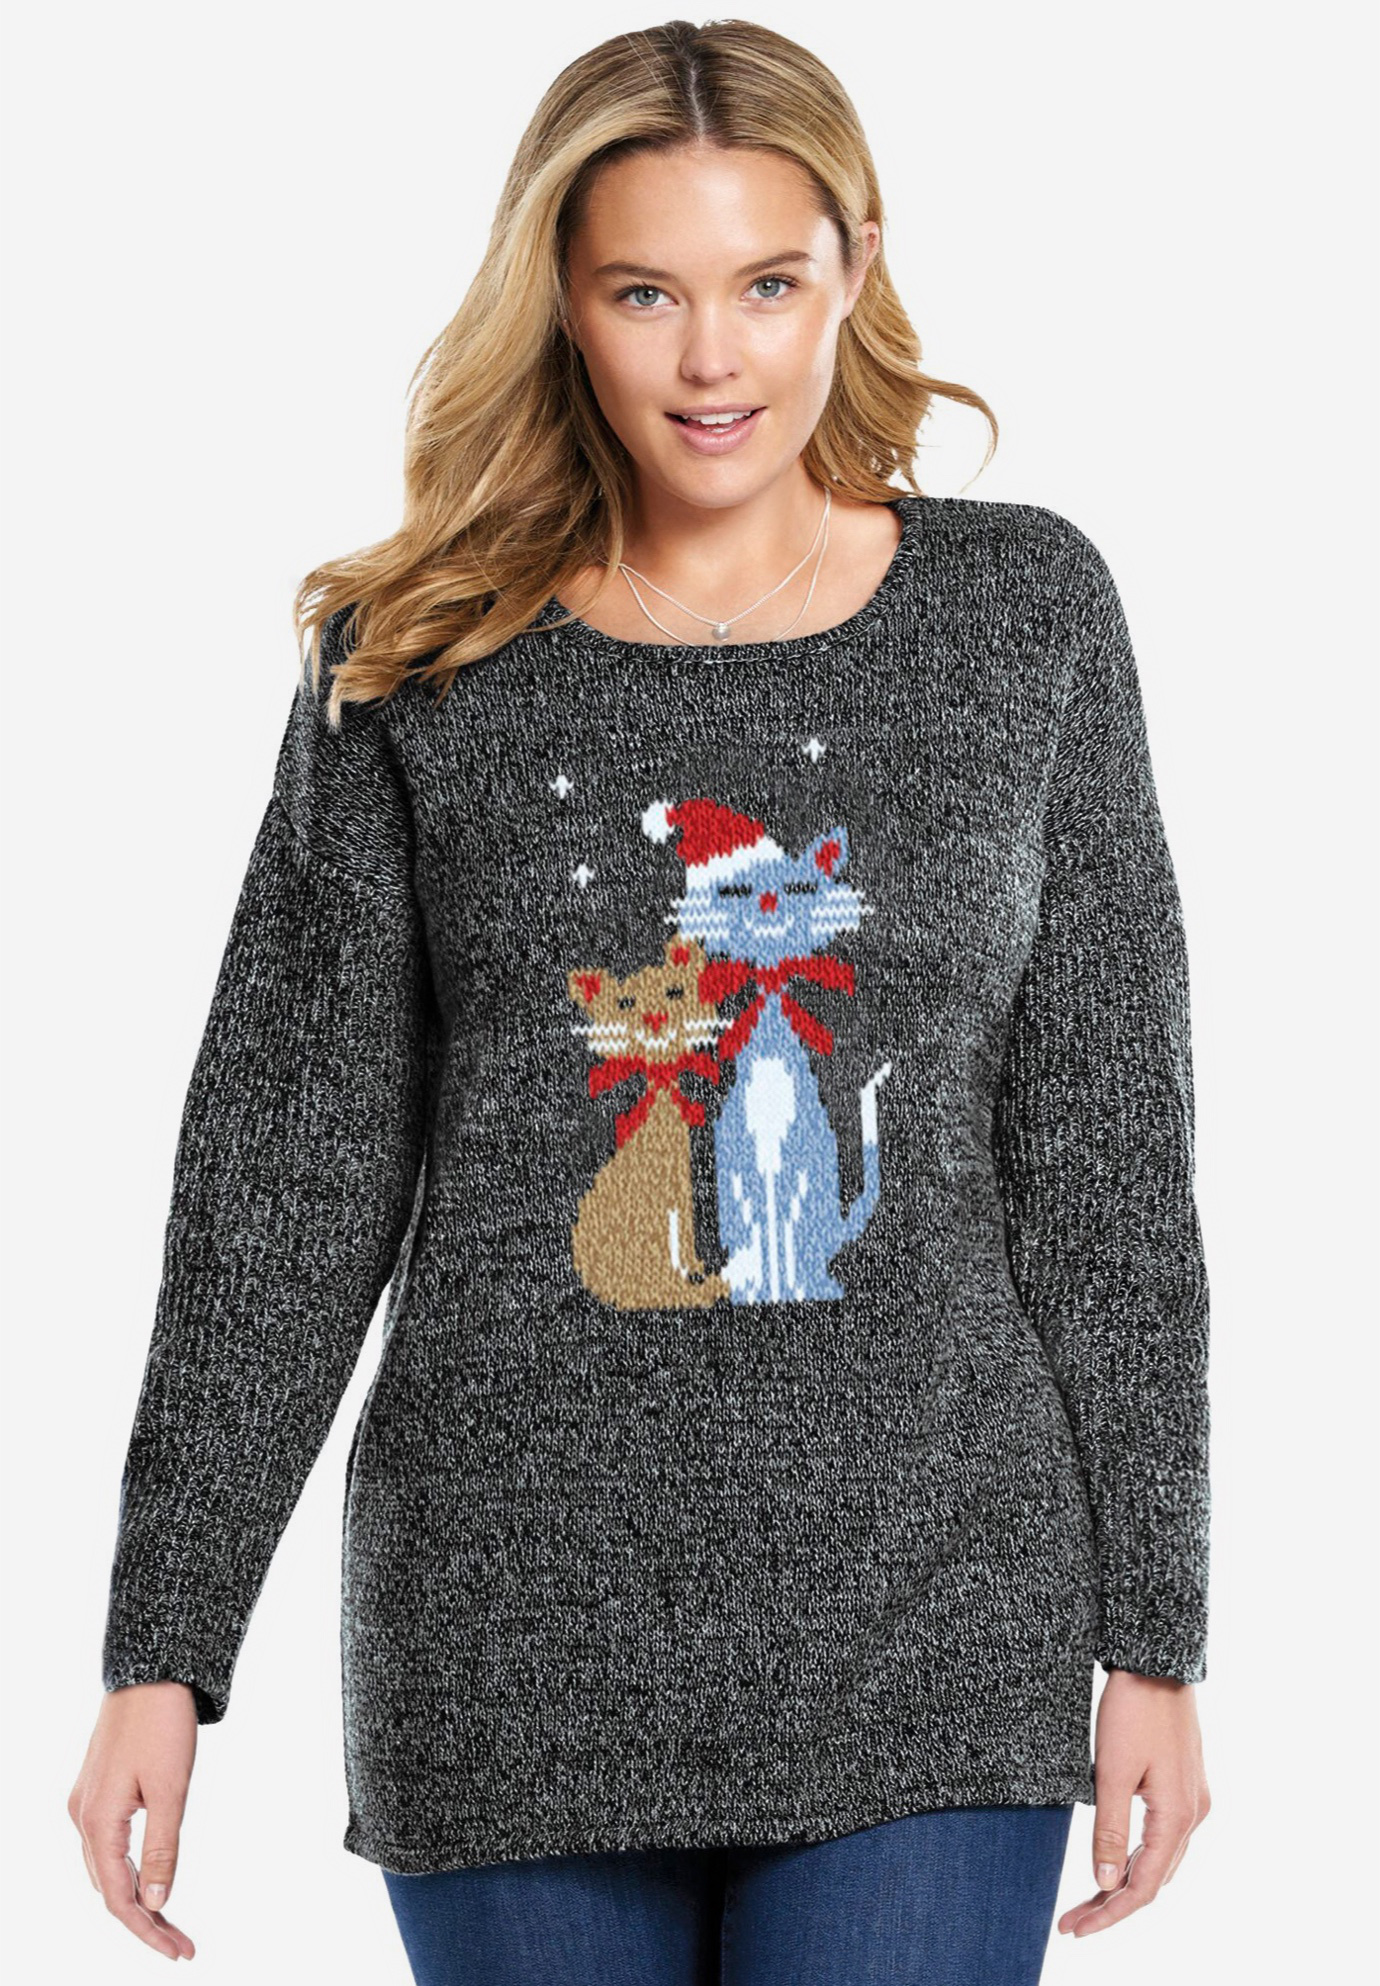 Pullover sweater with holiday motifs,